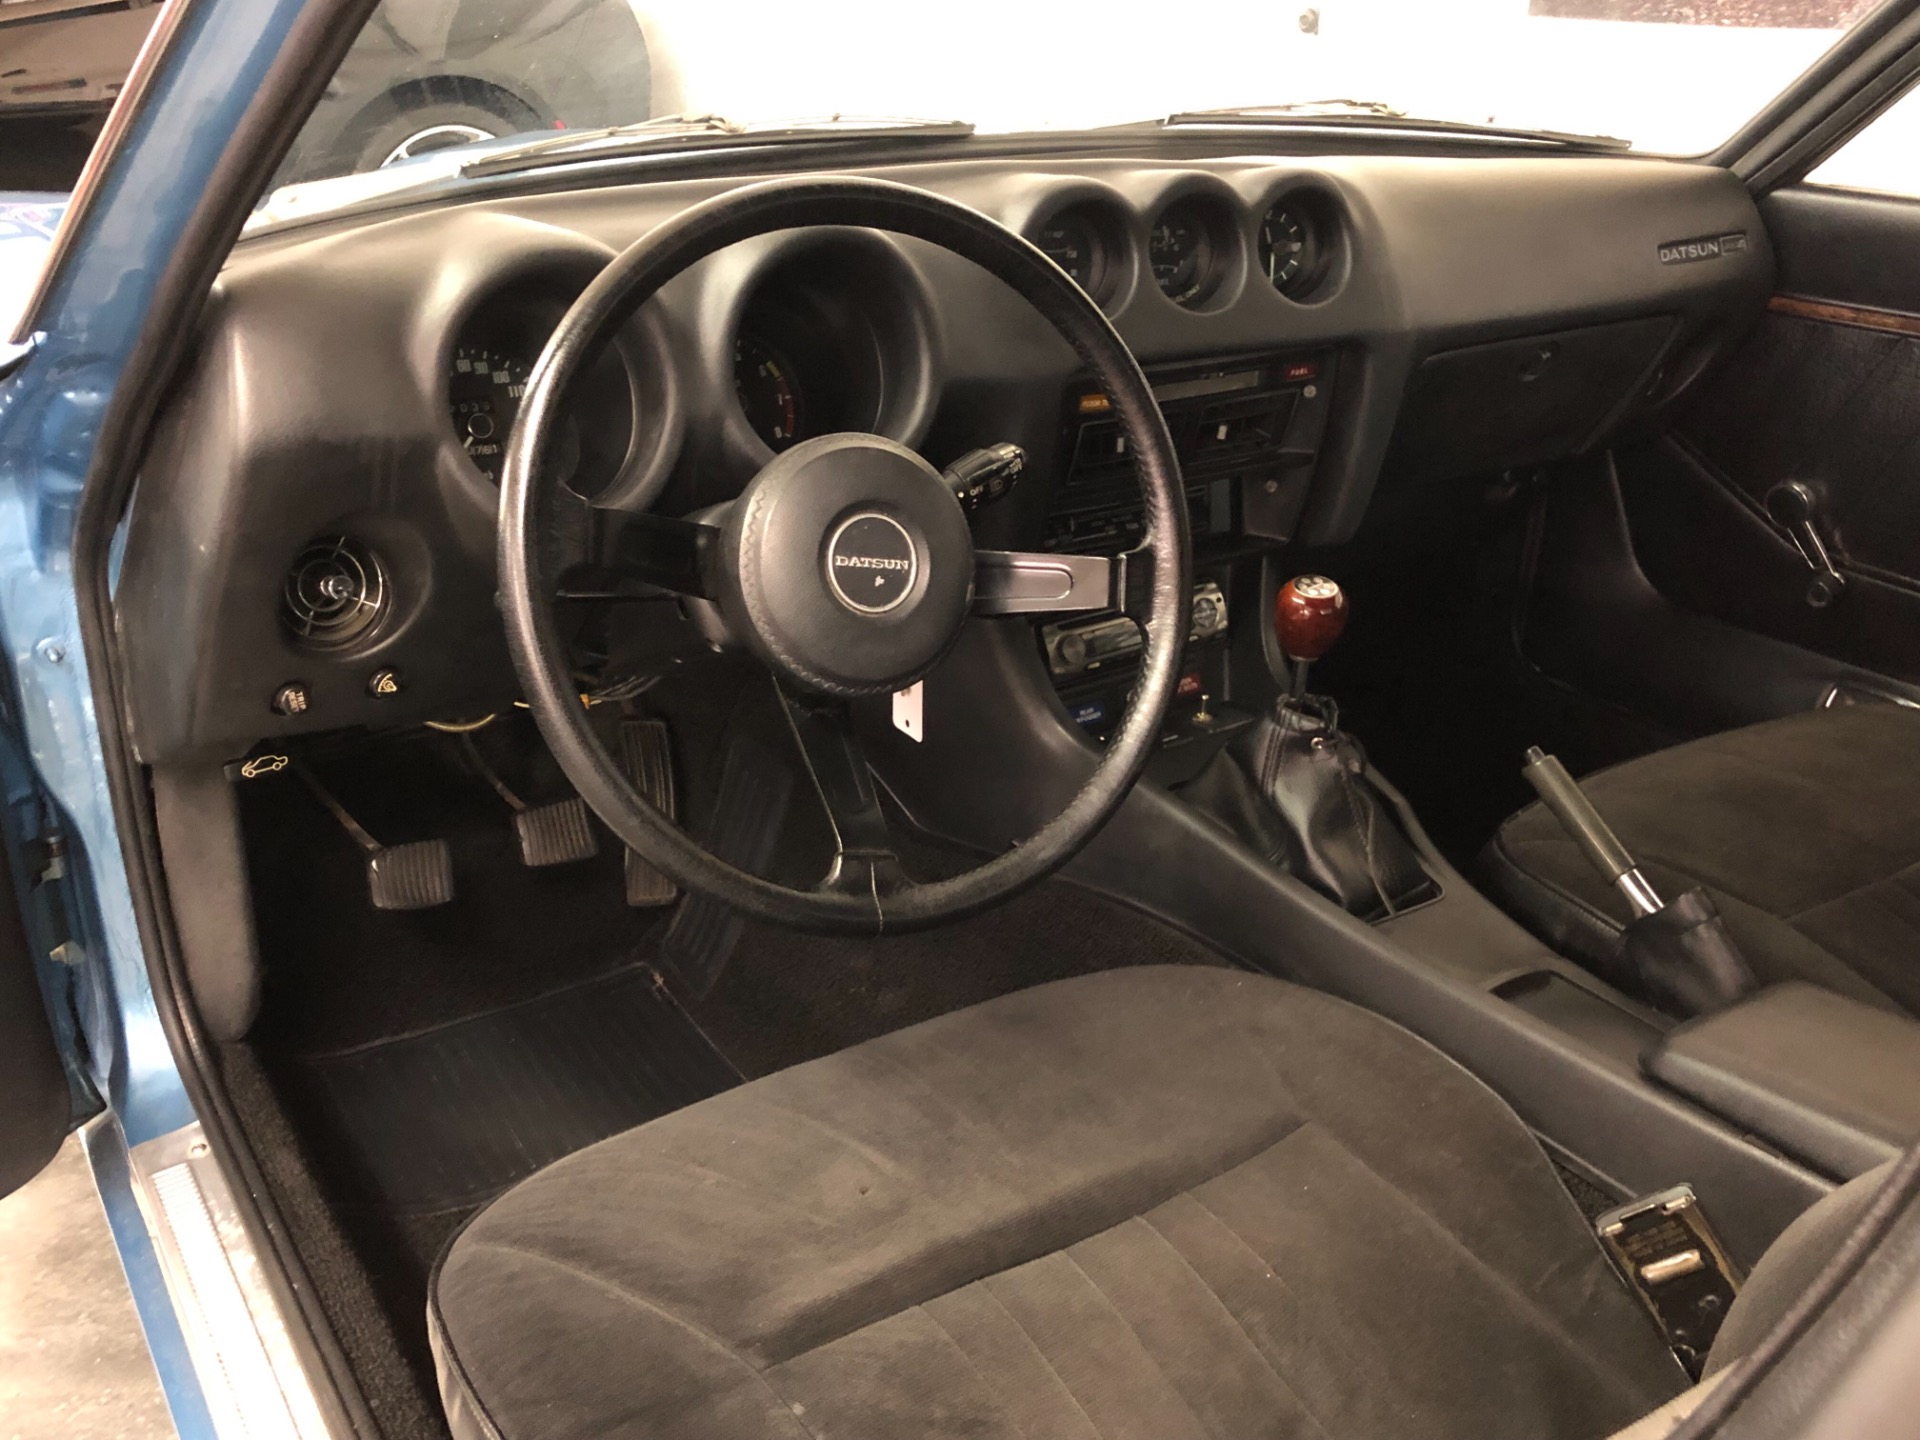 Used 1976 Datsun 280Z -CLEAN CLASSIC IMPORT-VIDEO | Mundelein, IL